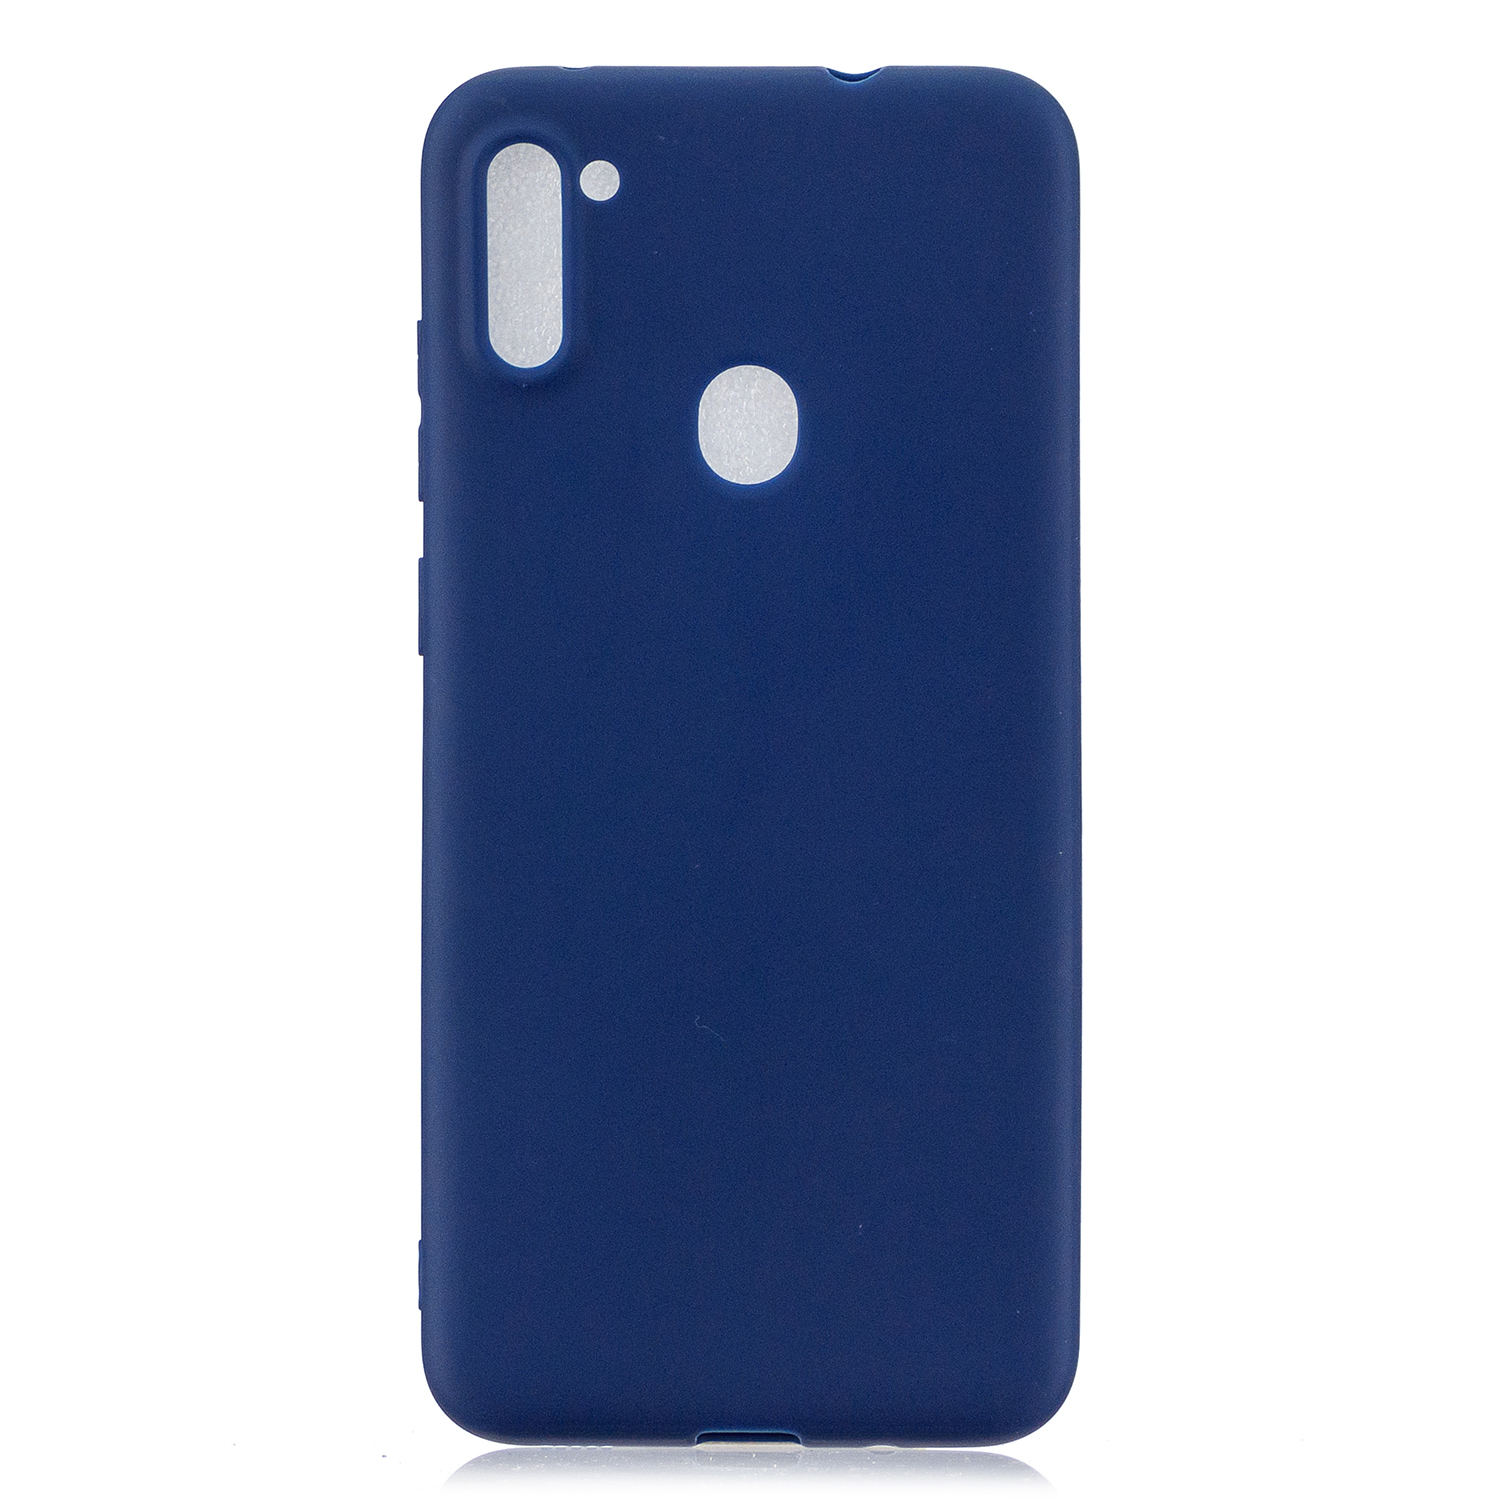 For Samsung A01/ A11/A21/A41/A51/A71/A81/A91 Mobile Phone Case Lovely Candy Color Matte TPU Anti-scratch Non-slip Protective Cover Back Case 7 royal blue